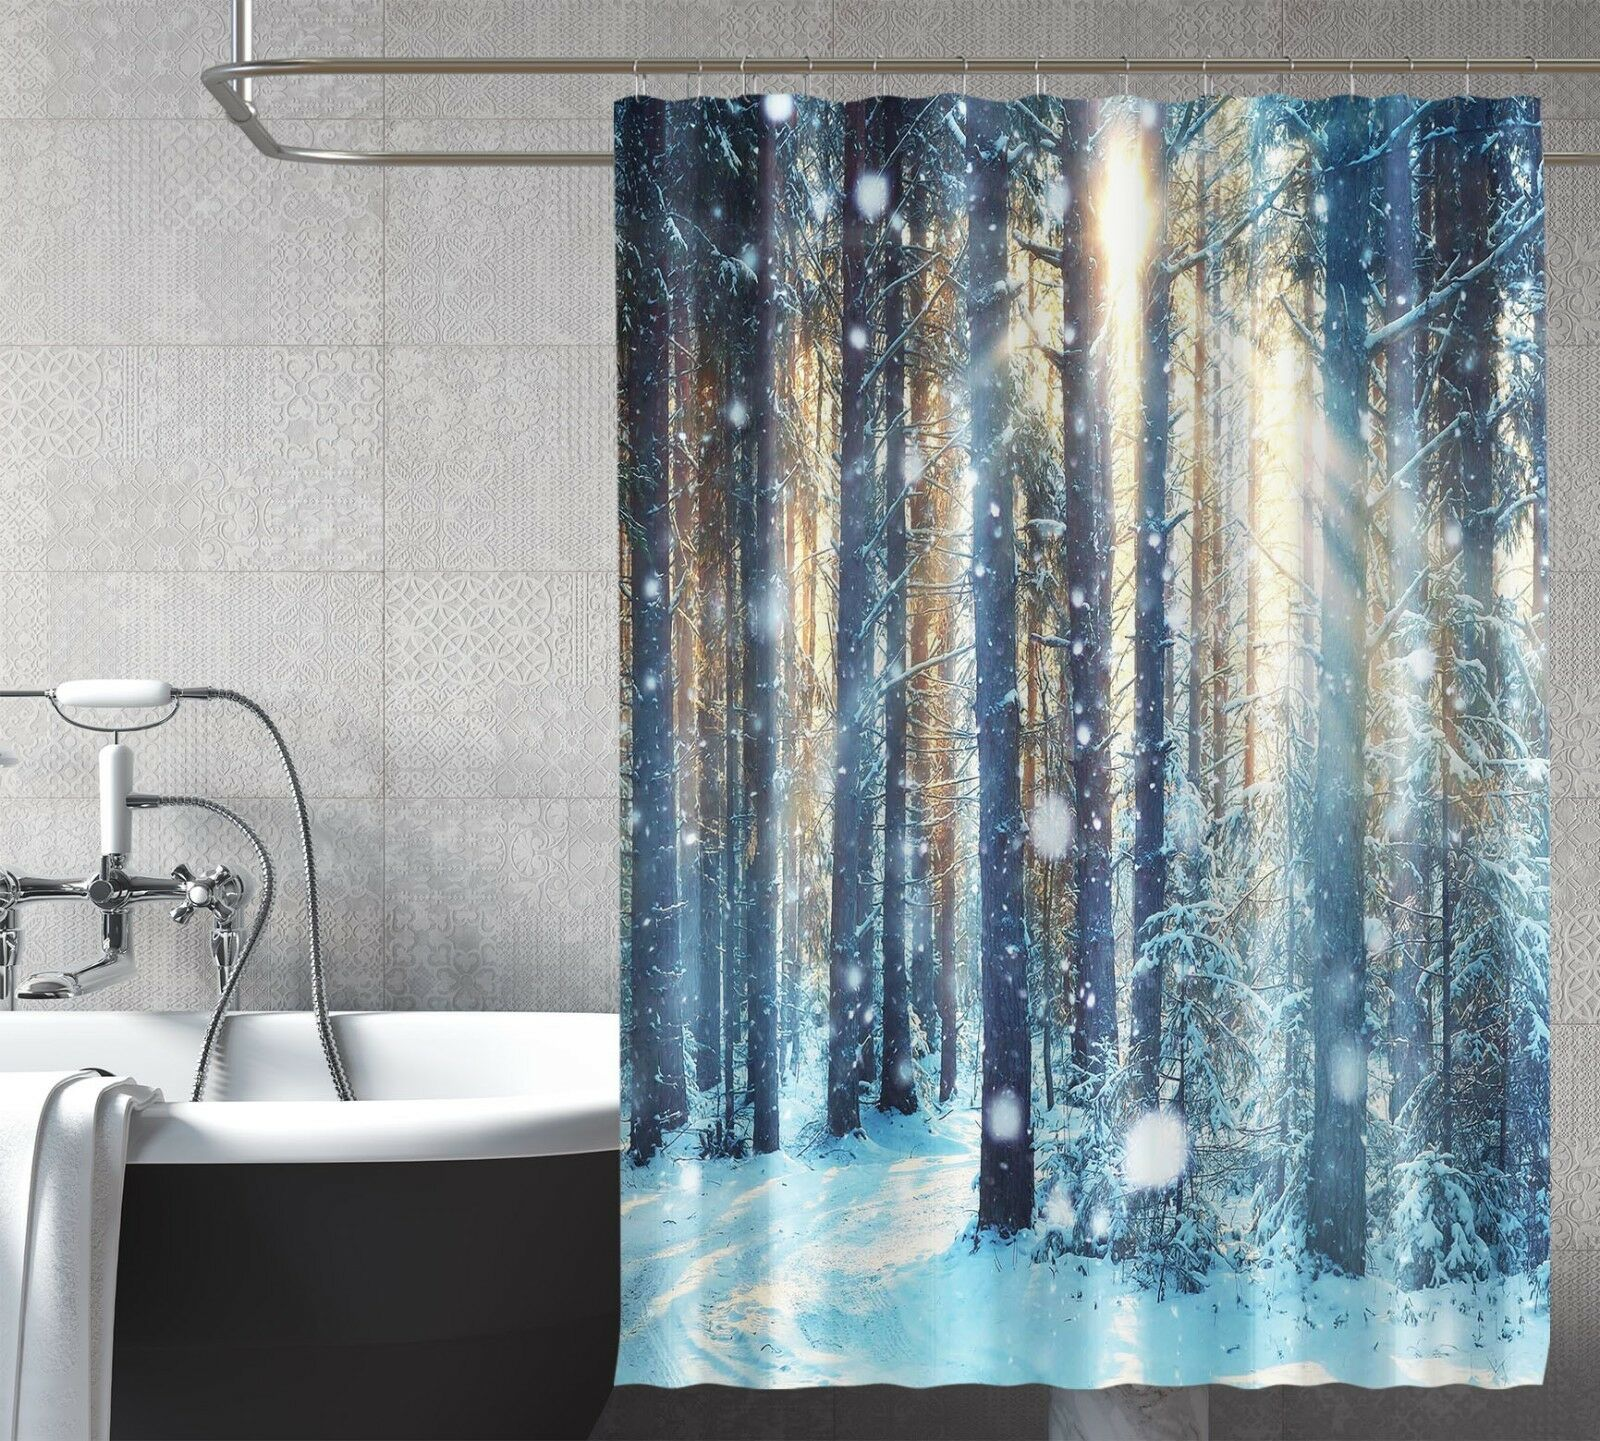 3D Snow Forest 546 Shower Curtain Waterproof Fiber Bathroom Home Windows Toilet